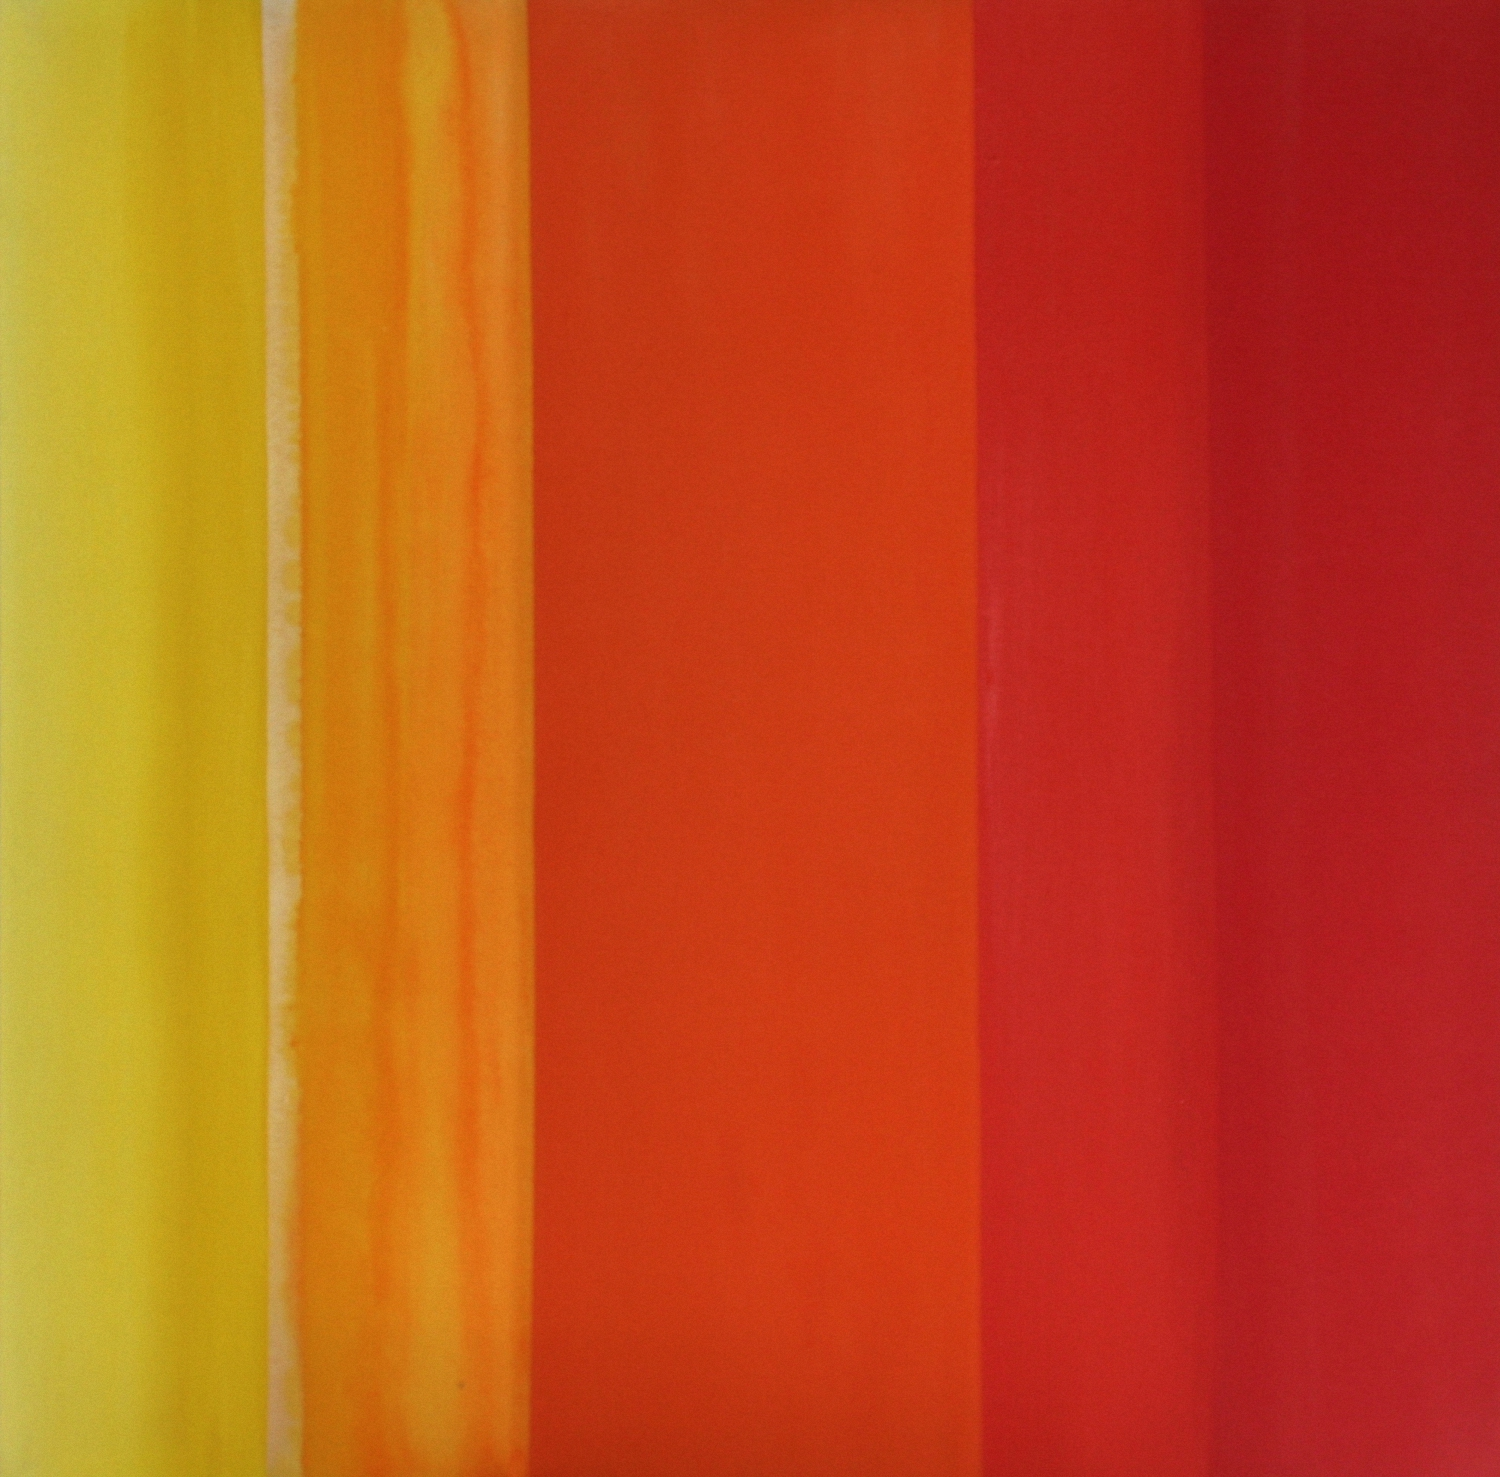 Stripe Series (Red Painting)    oil on canvas  100 cm x 100 cm